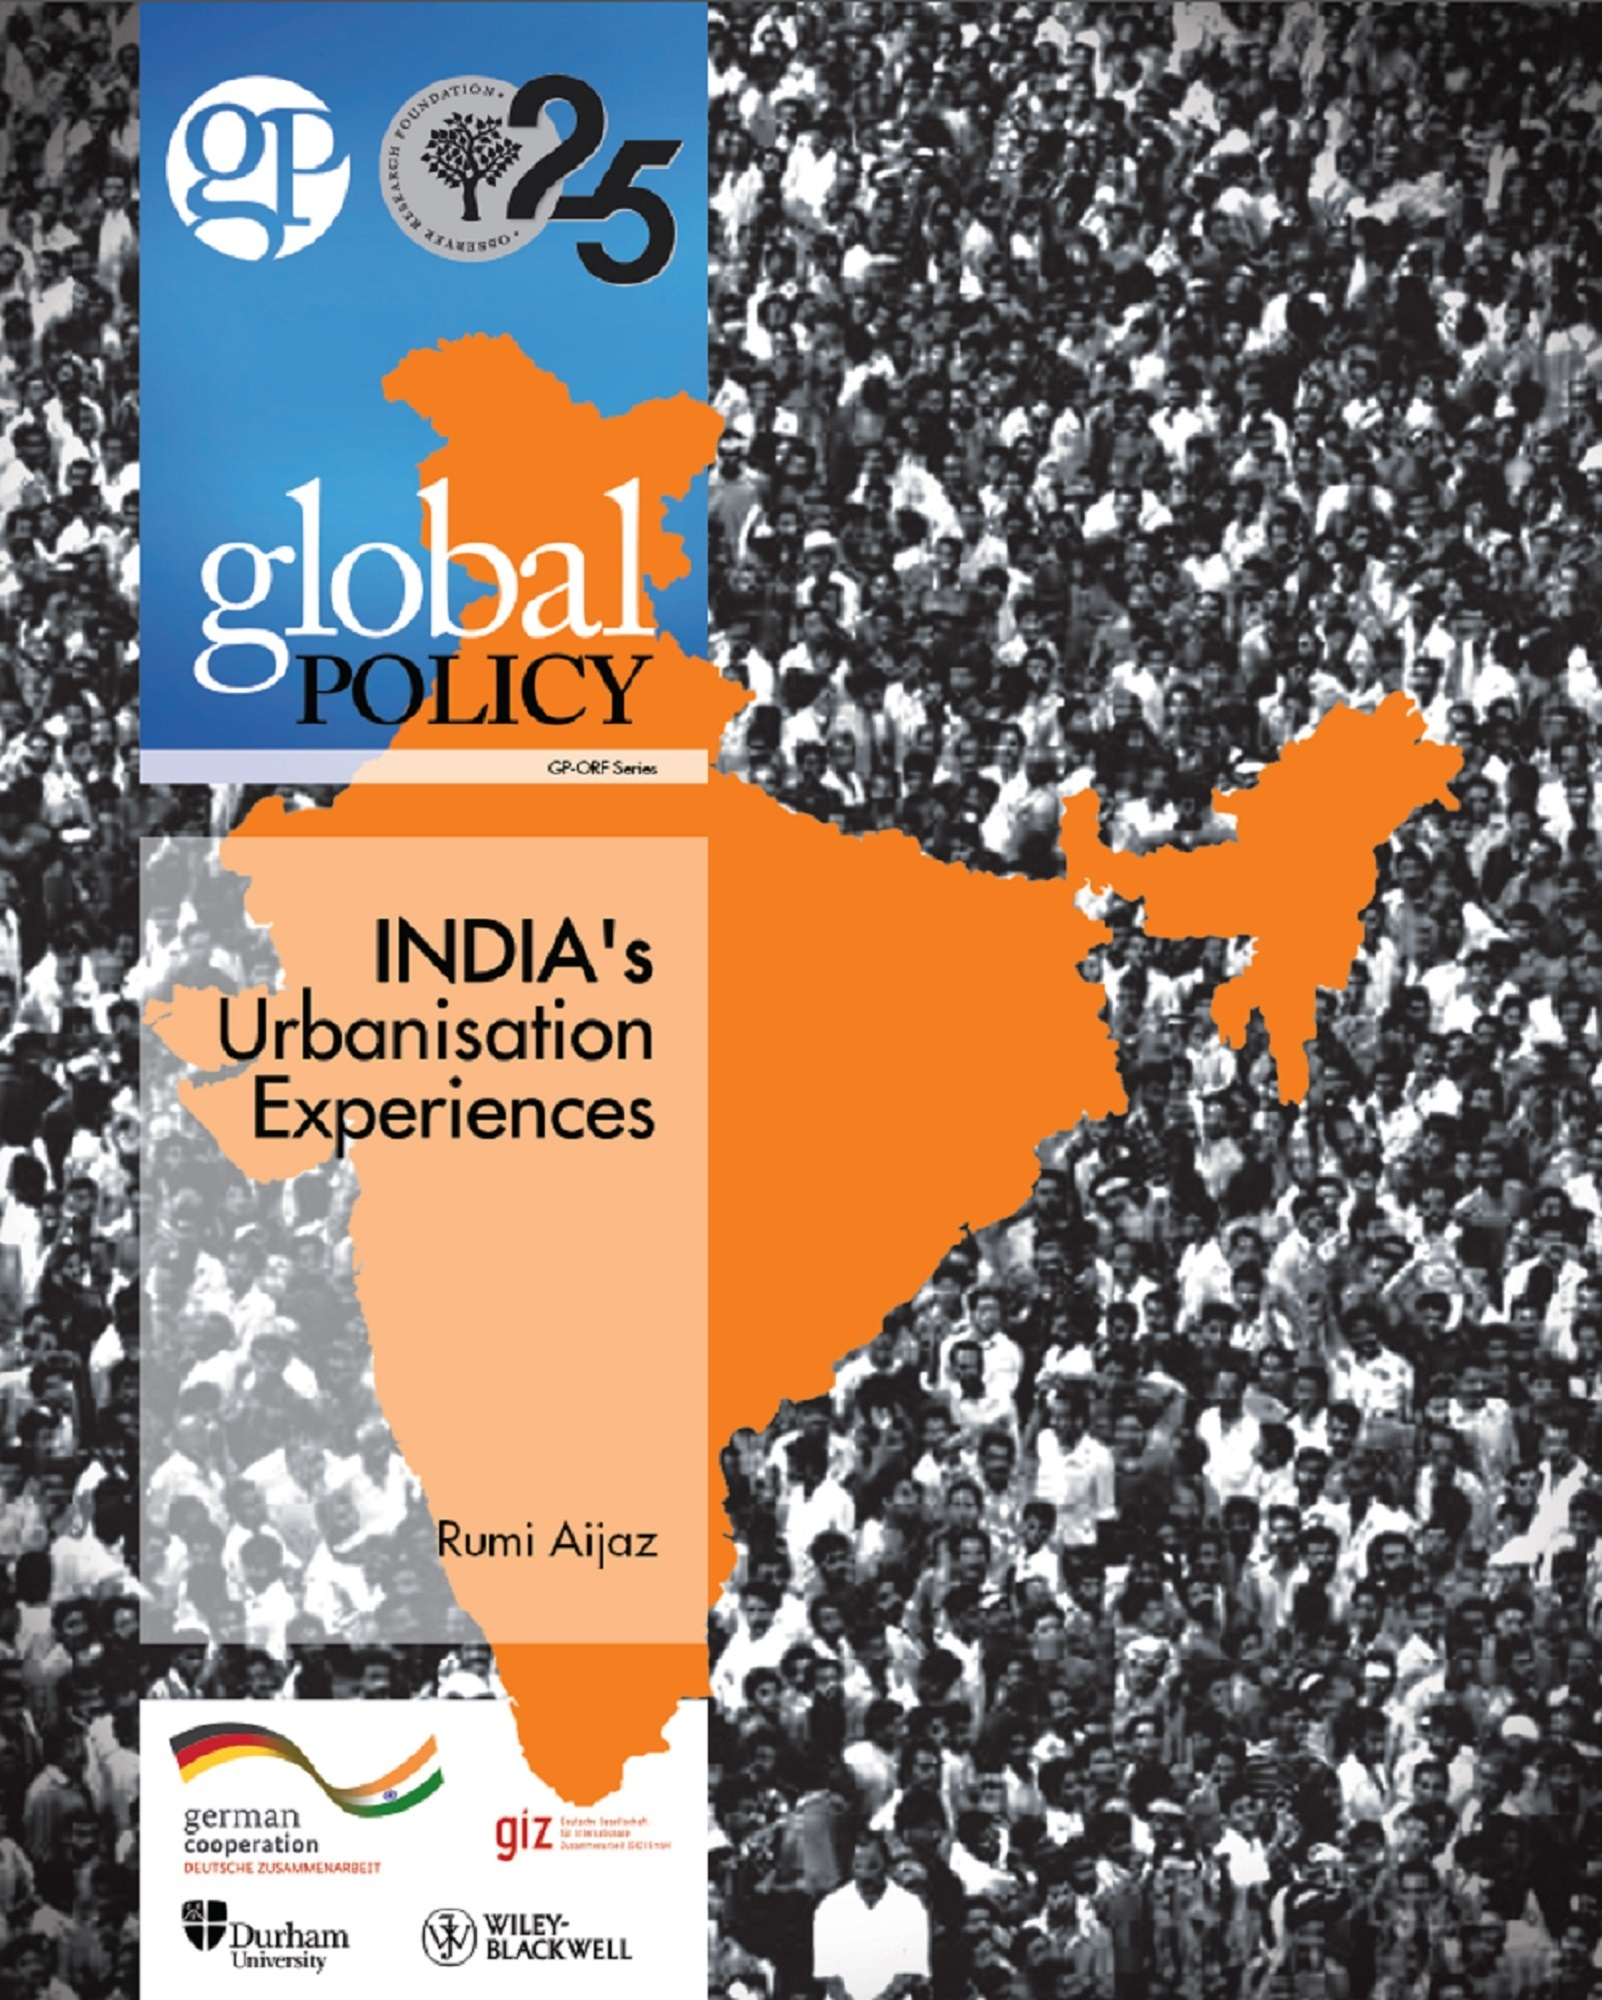 India's Urbanisation Experiences Global Policy